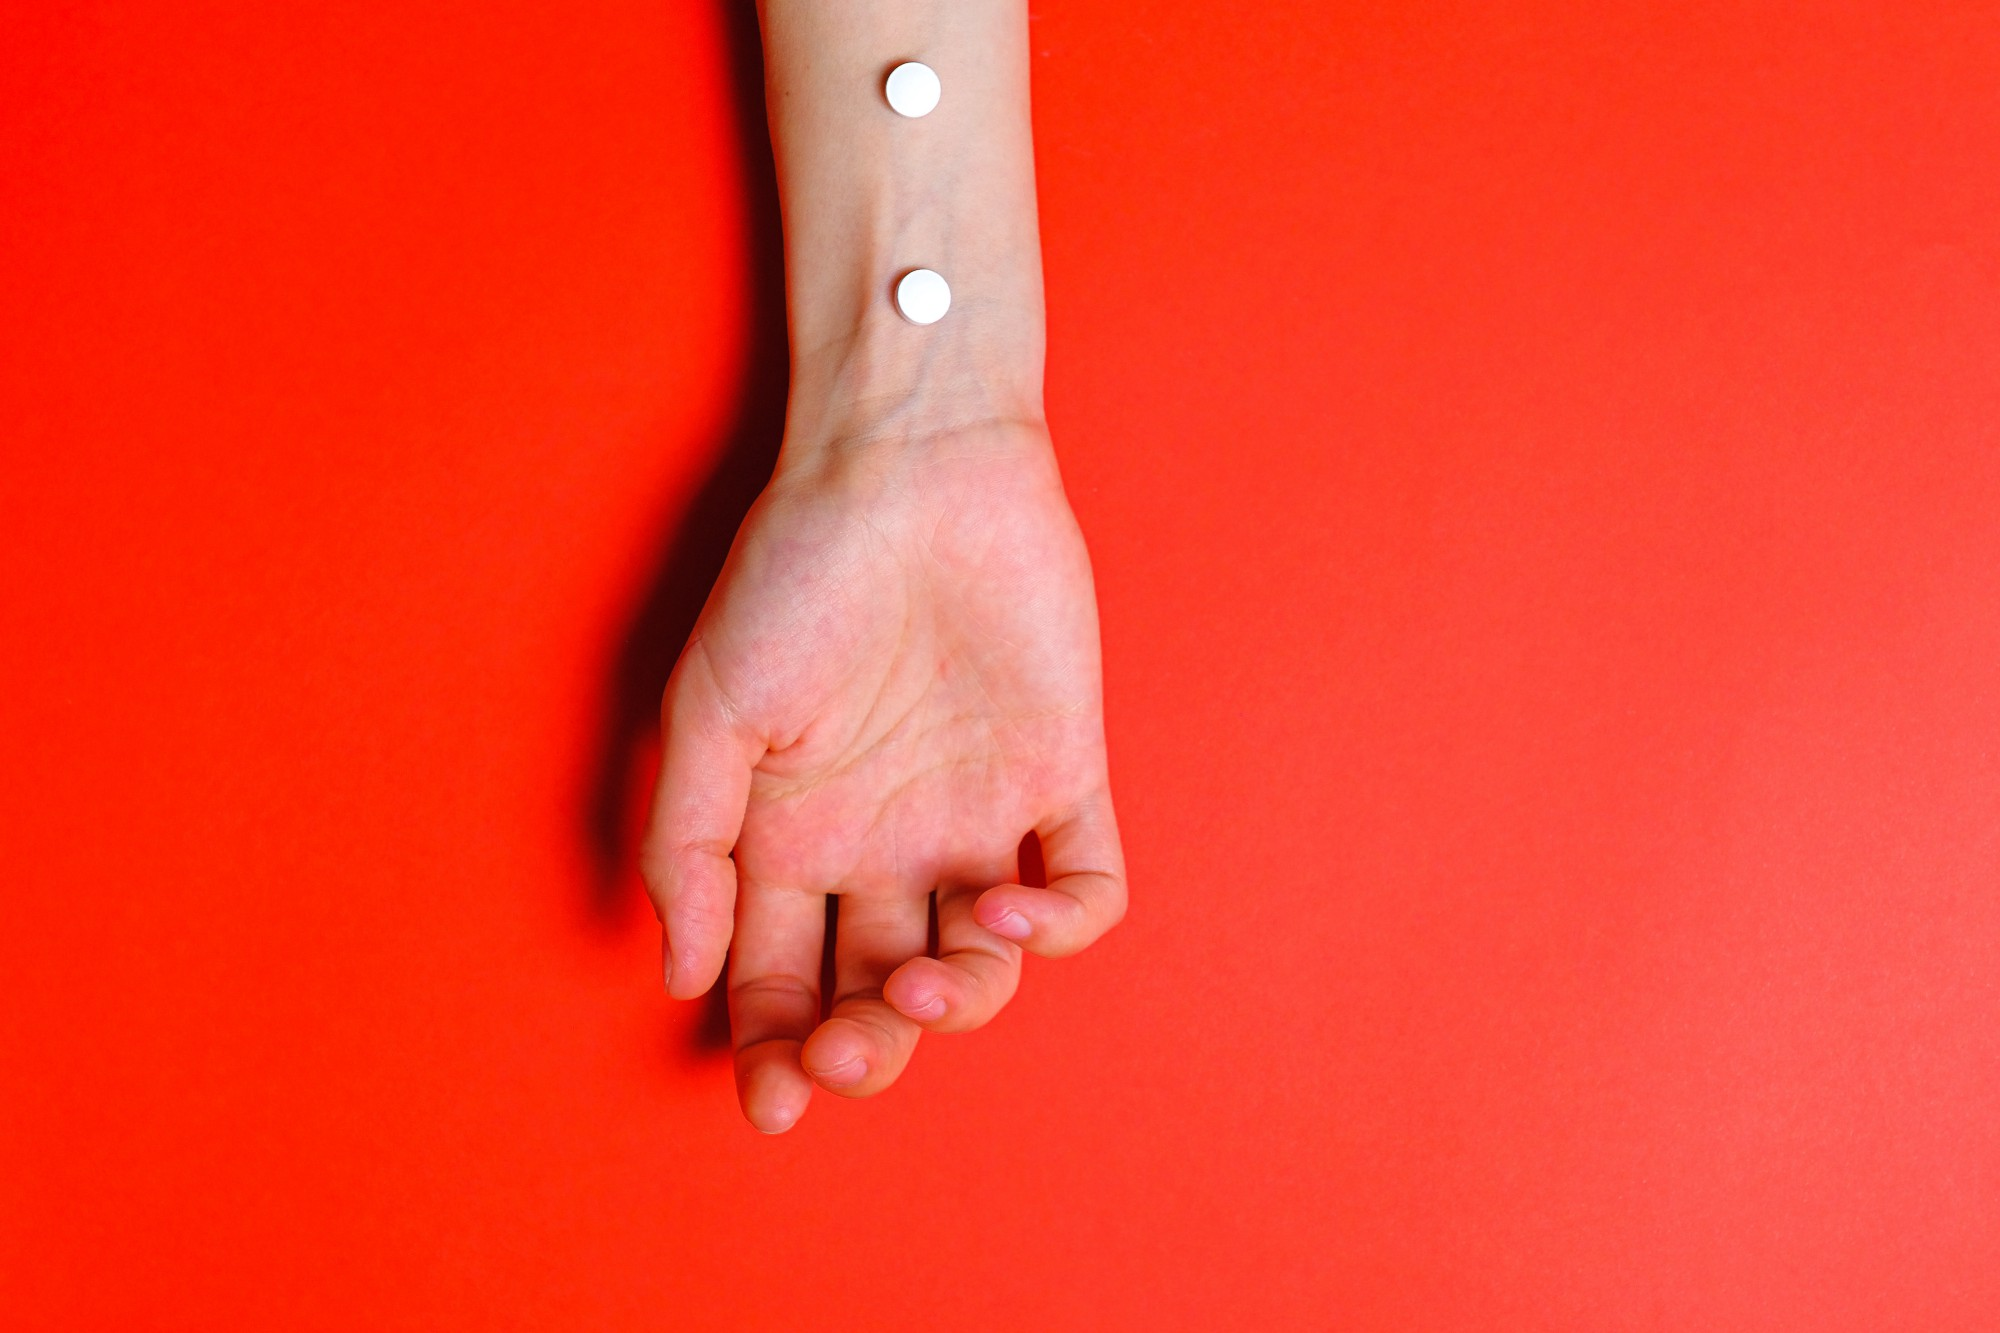 Red background and white hand on it drugs.